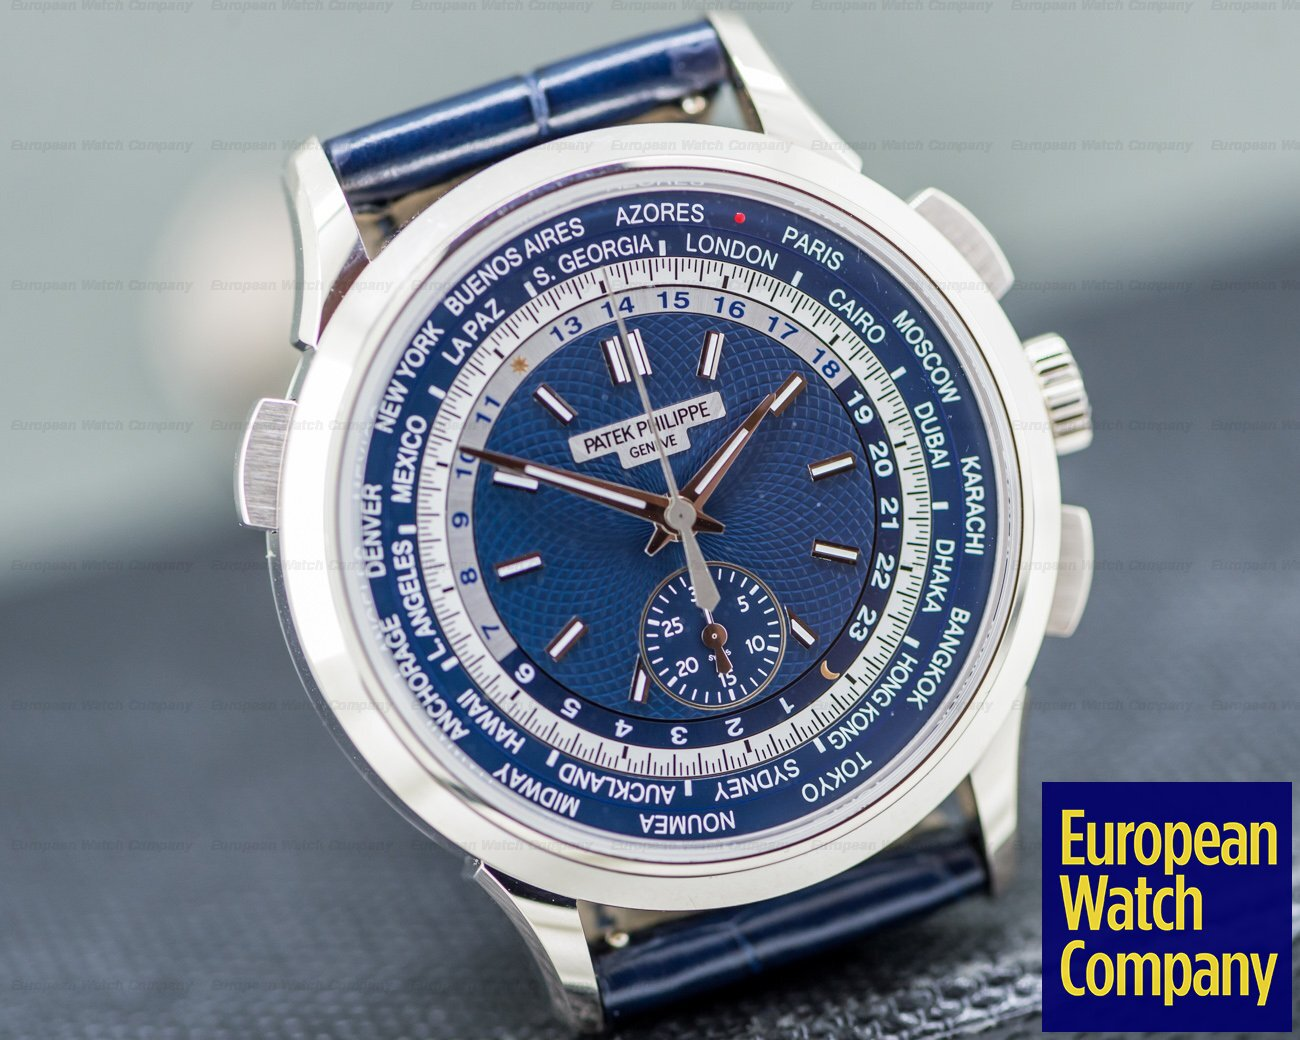 Patek Philippe 5930G-001 World Time Chronograph 18k White Gold